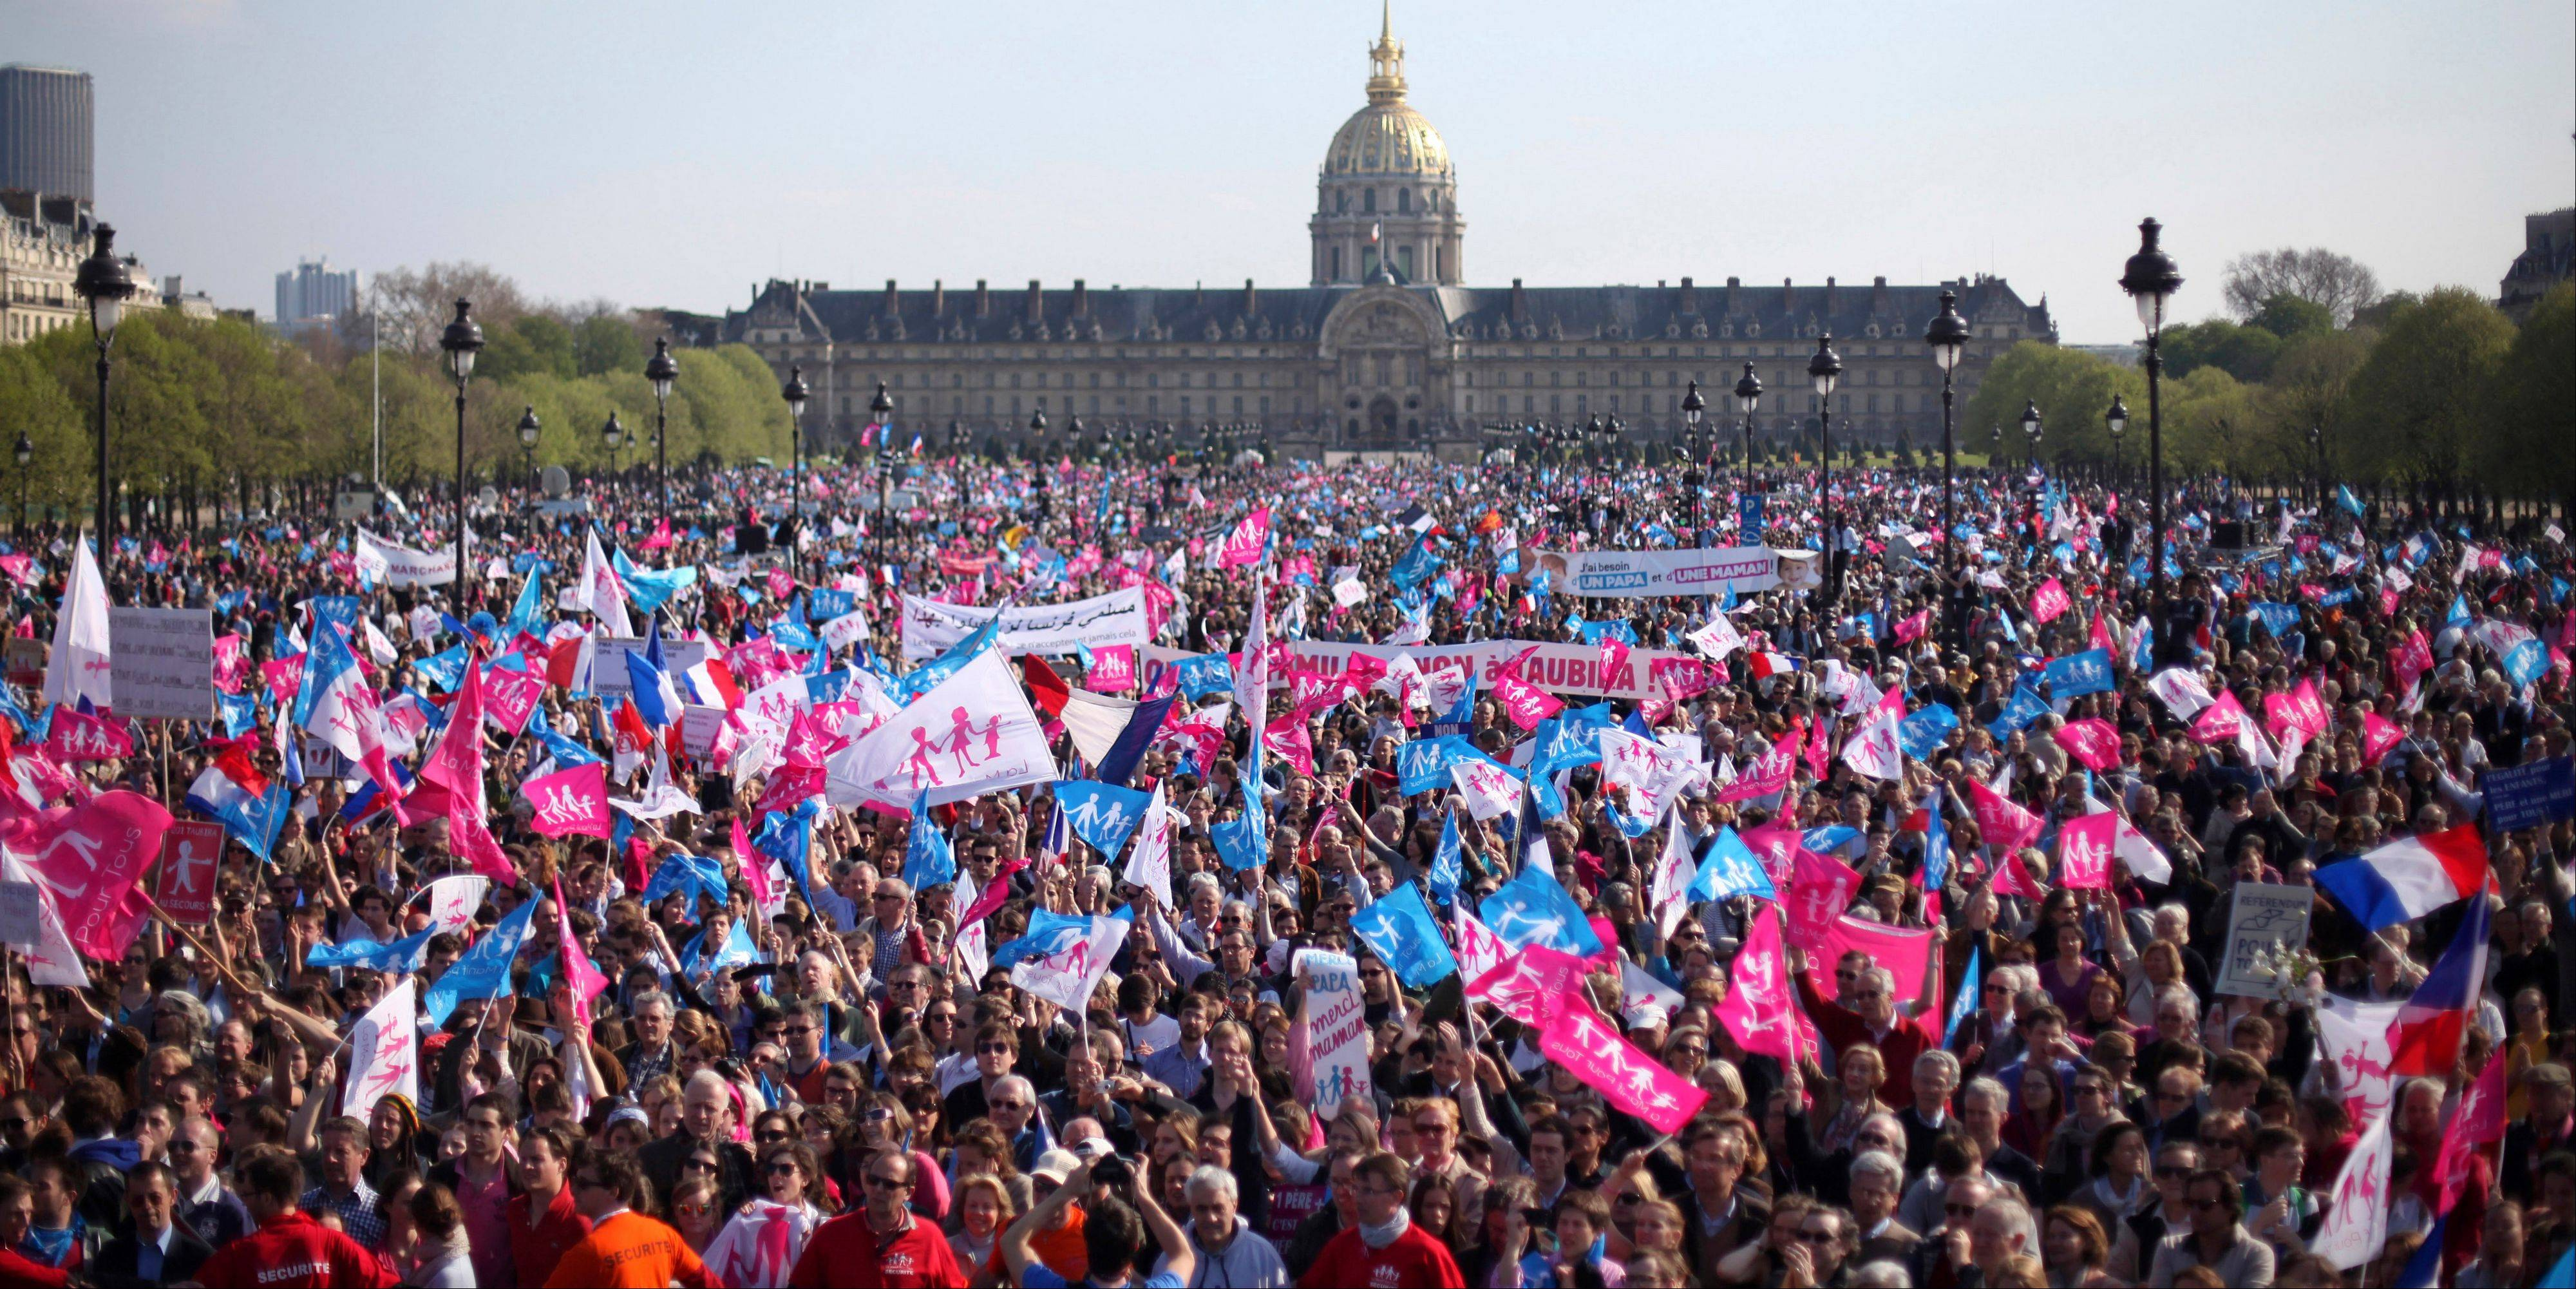 Demonstrators gathered at the Invalides square in Paris, during a rally to protest against French President Francois Hollande's social reform on gay marriage and adoption.